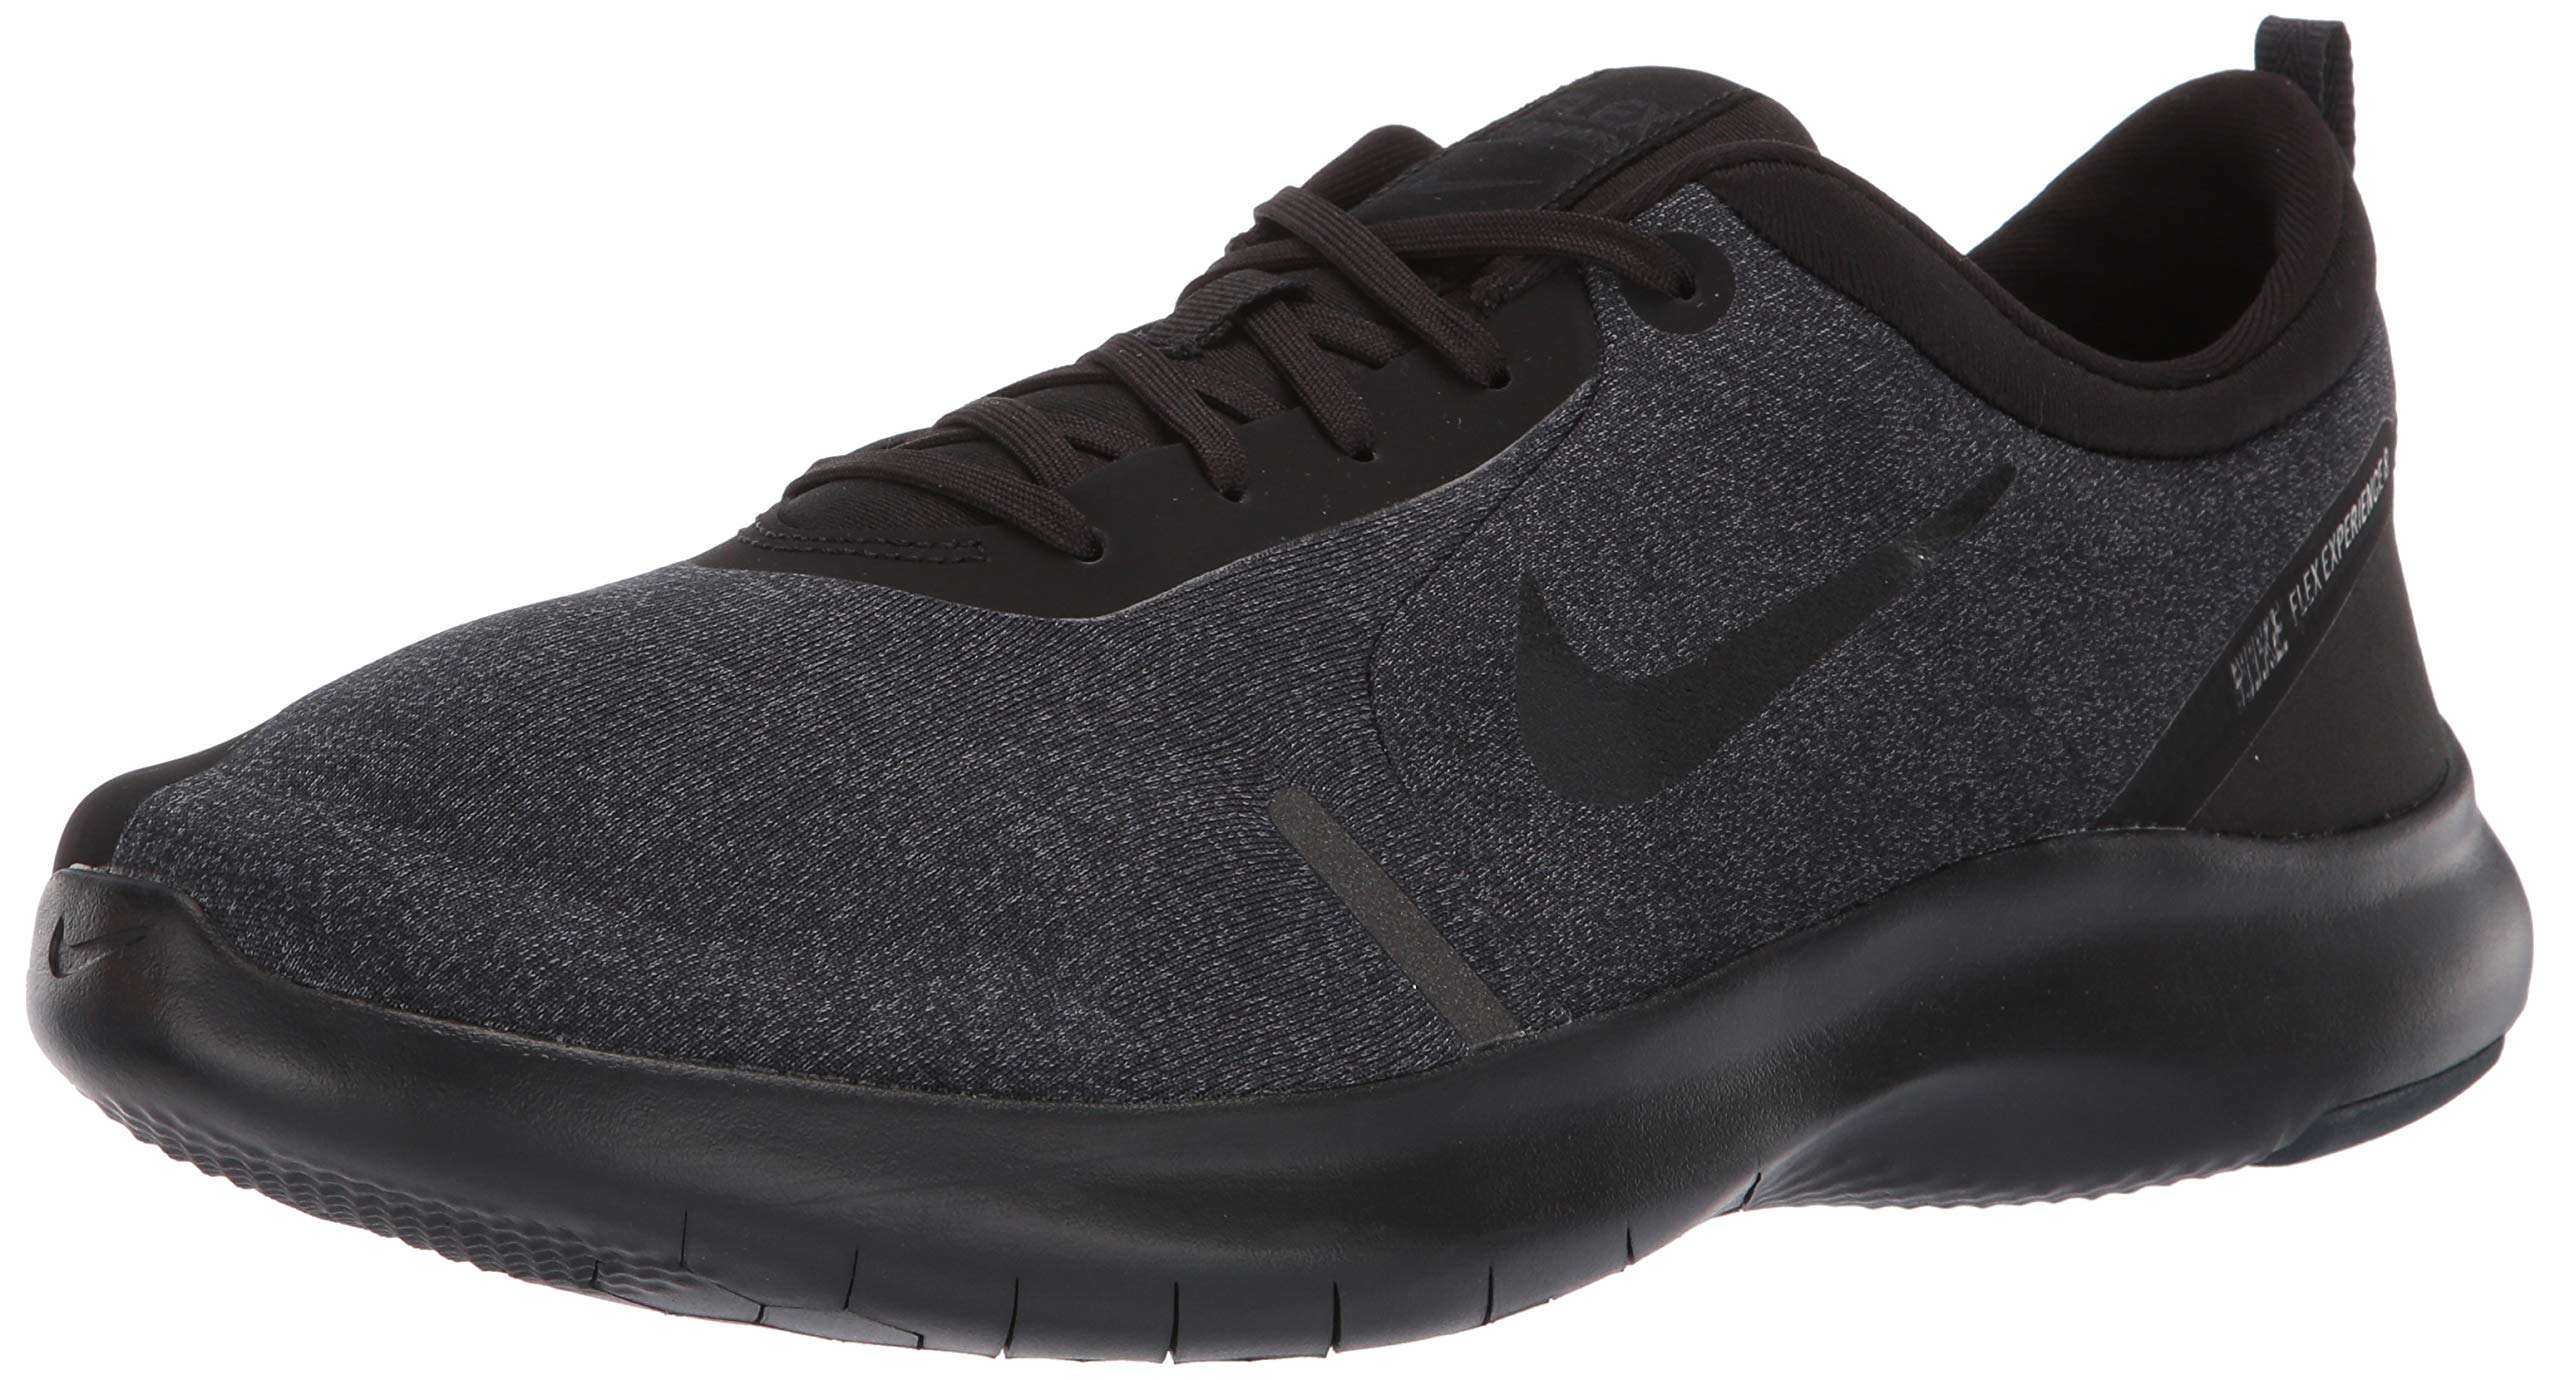 Nike Men's Flex Experience Run 8 Shoe, Black-Anthracite-Dark Grey, 7 4E US